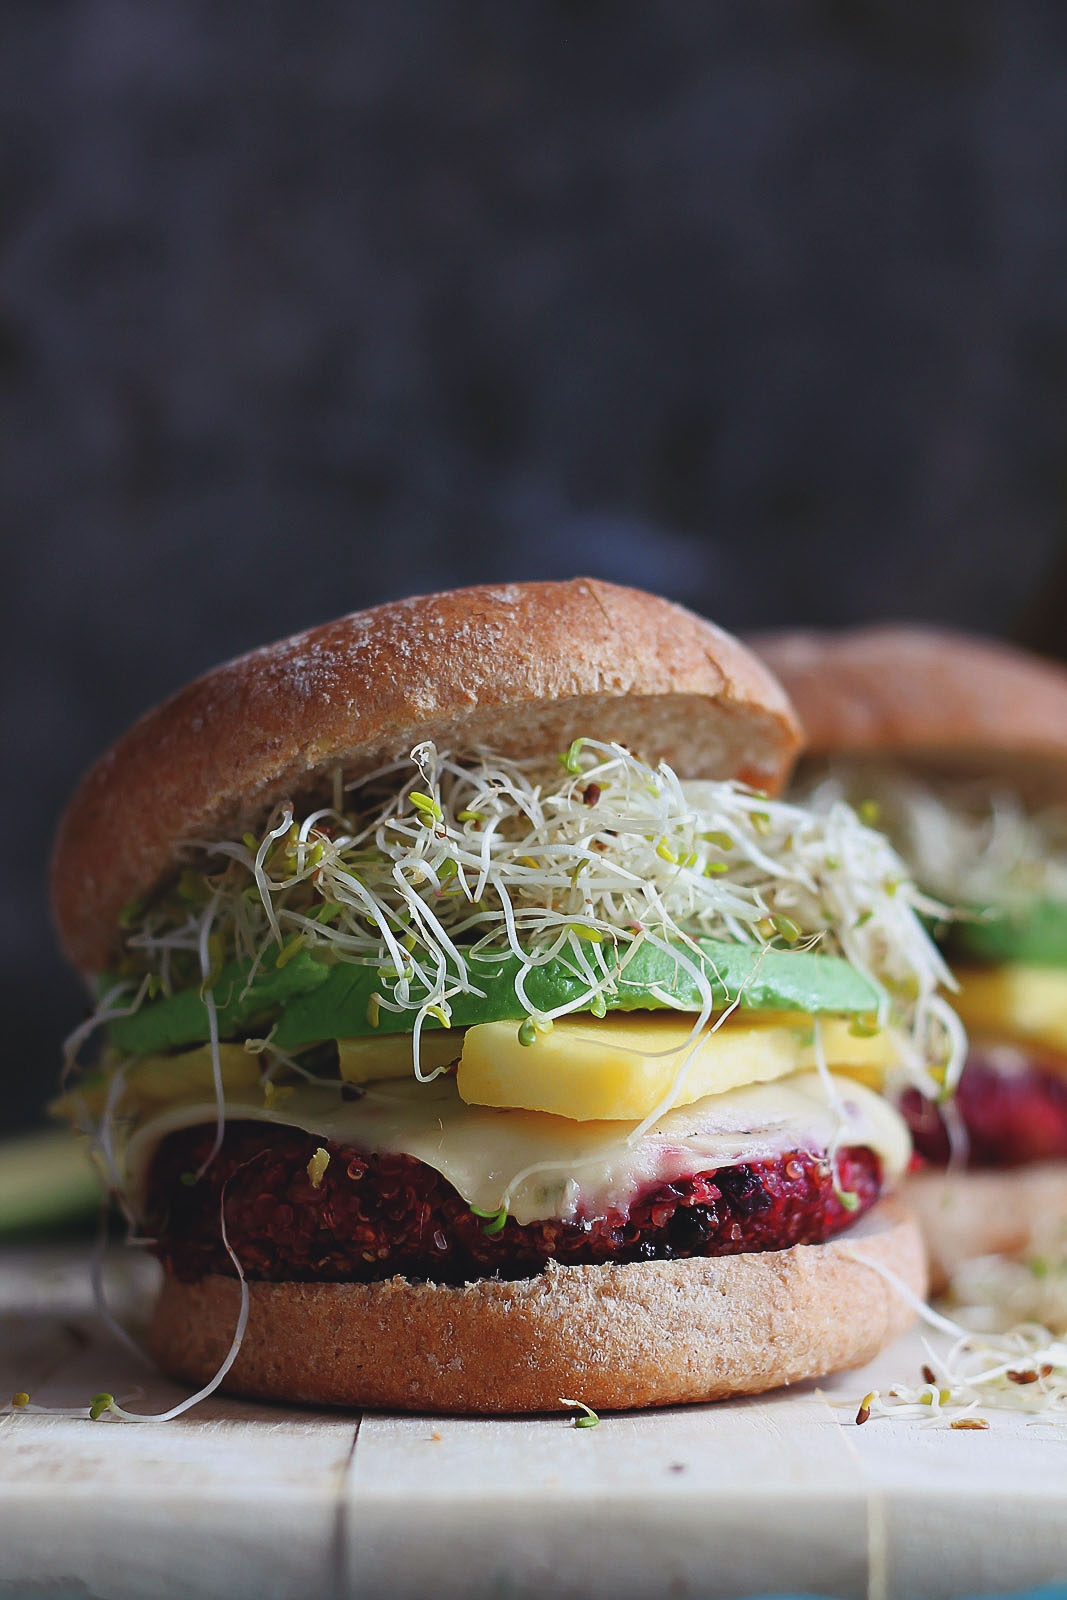 Beet burger topped with sprouts, avocado, mango and cheese